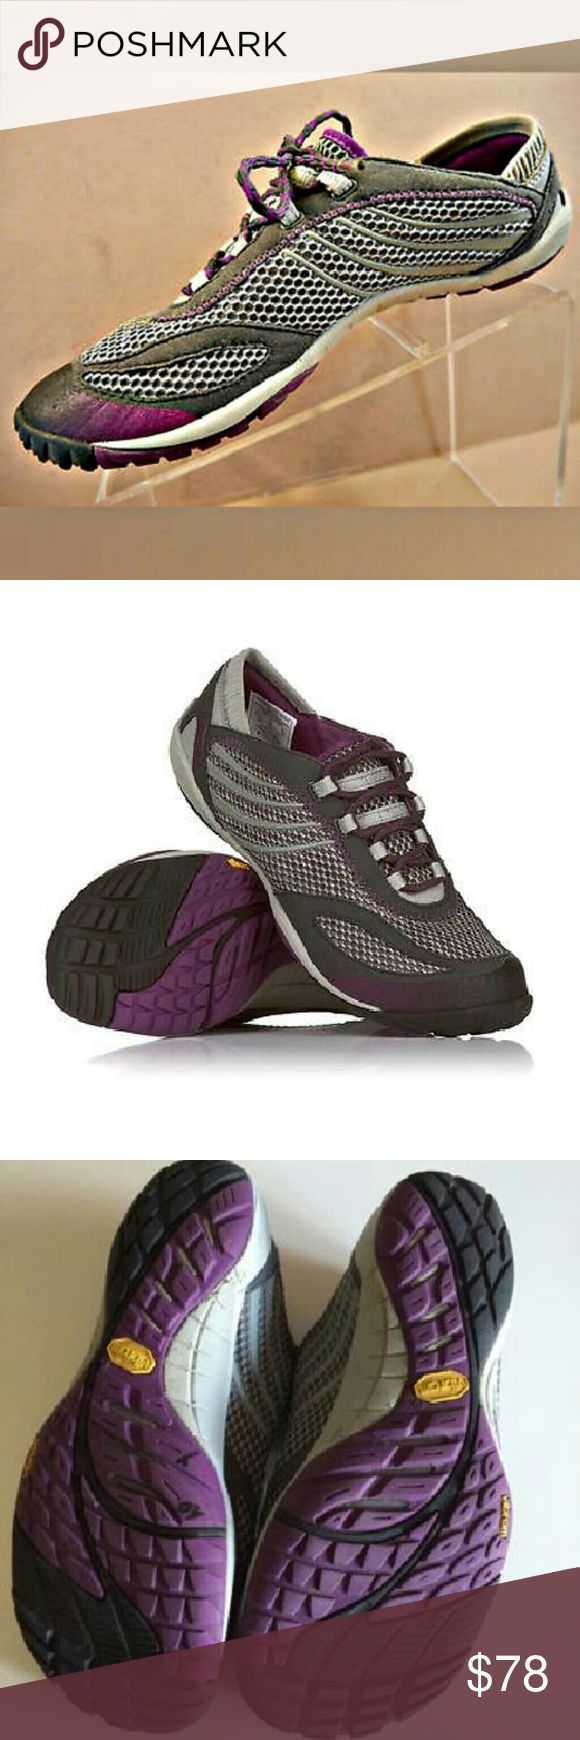 MERRELL Barefoot Climbing Shoe 100% Non Smoking, No Pet Home.  Feel free to like, follow, and share. Open to offers. Thanks for the love! :)  Pace Glove Dark Shadow // Vibram //Grey Purple // Athletic Shoe // Durable // Water Resistant //Running // Natural // Size Nine // Women's 9  They look similar to a rock climbing shoe.  VERY little use. ALO Yoga Shoes Athletic Shoes